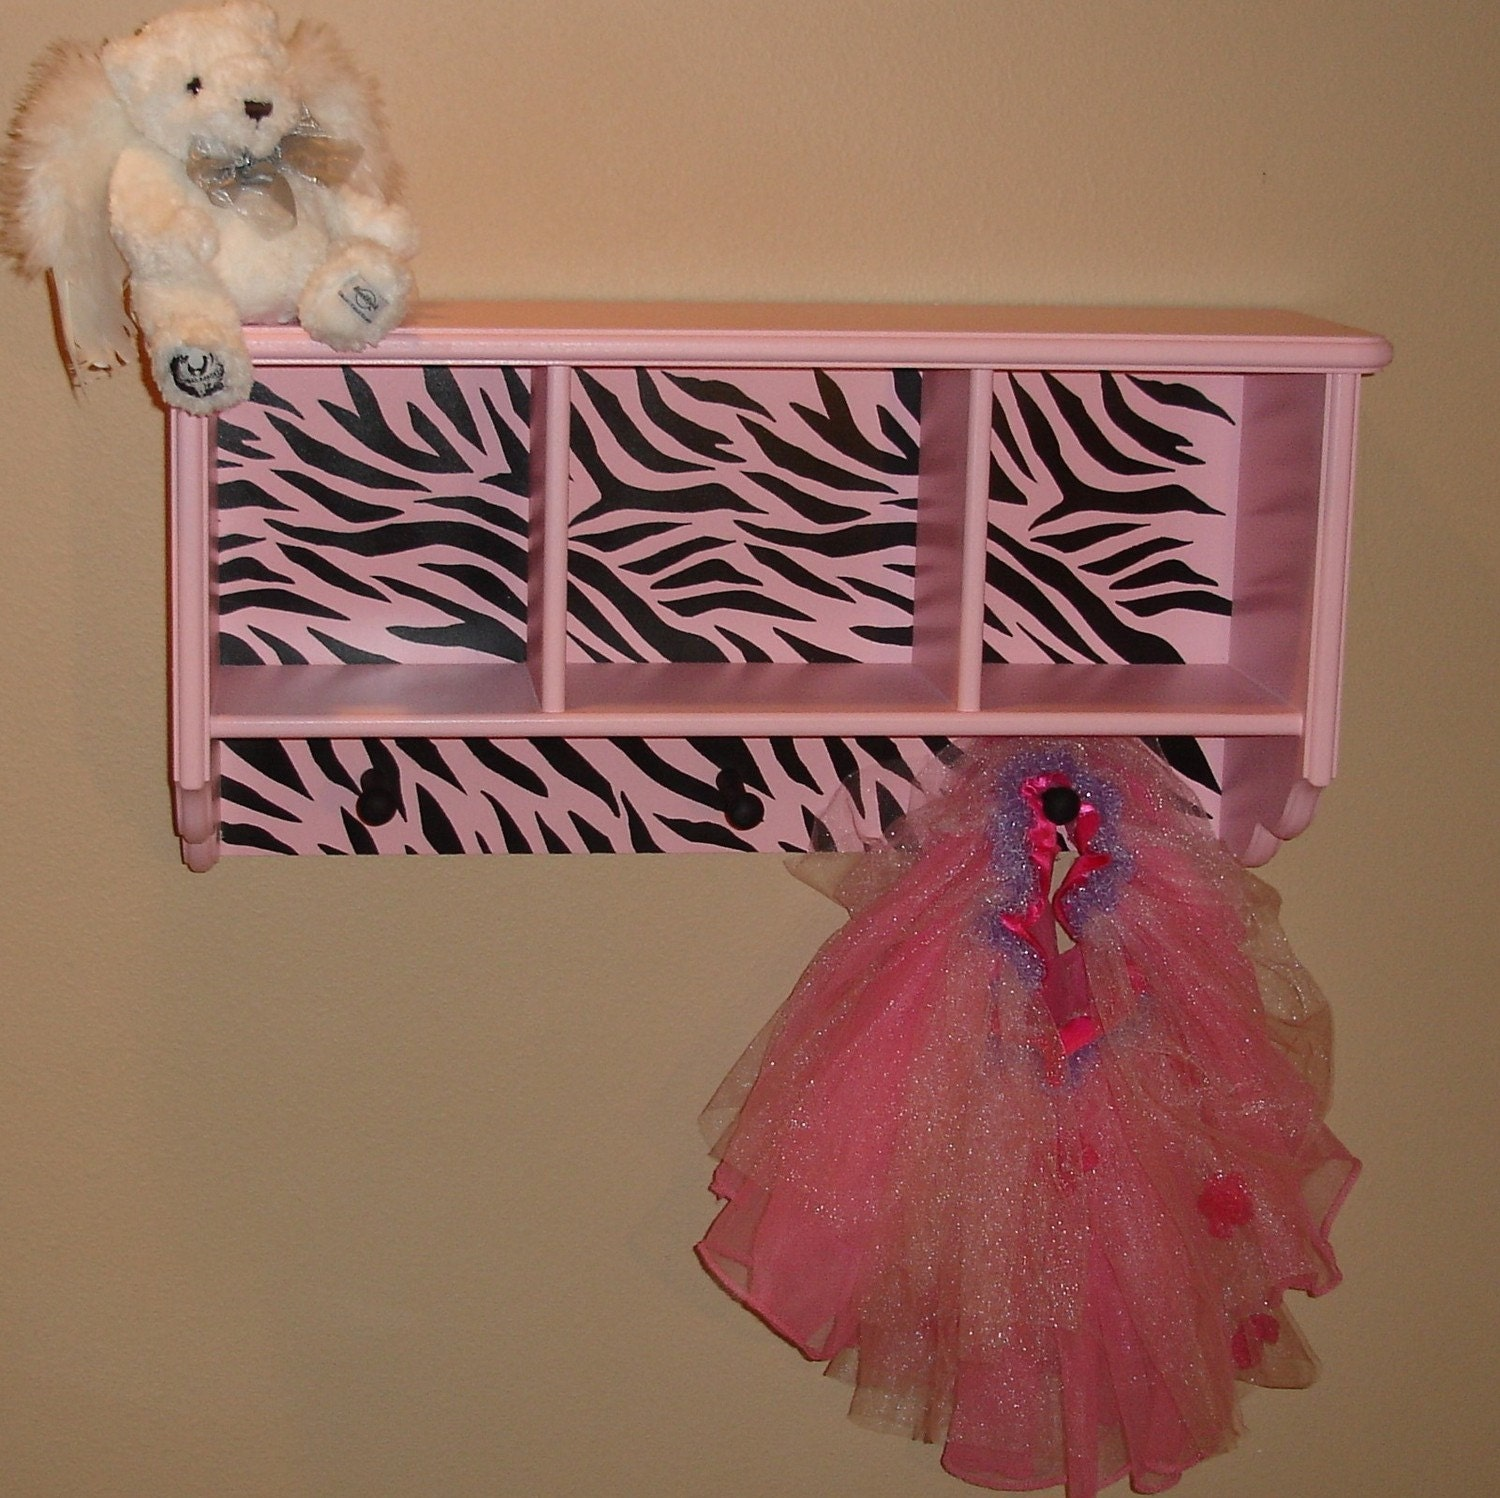 Zebra Striped Wall Shelf